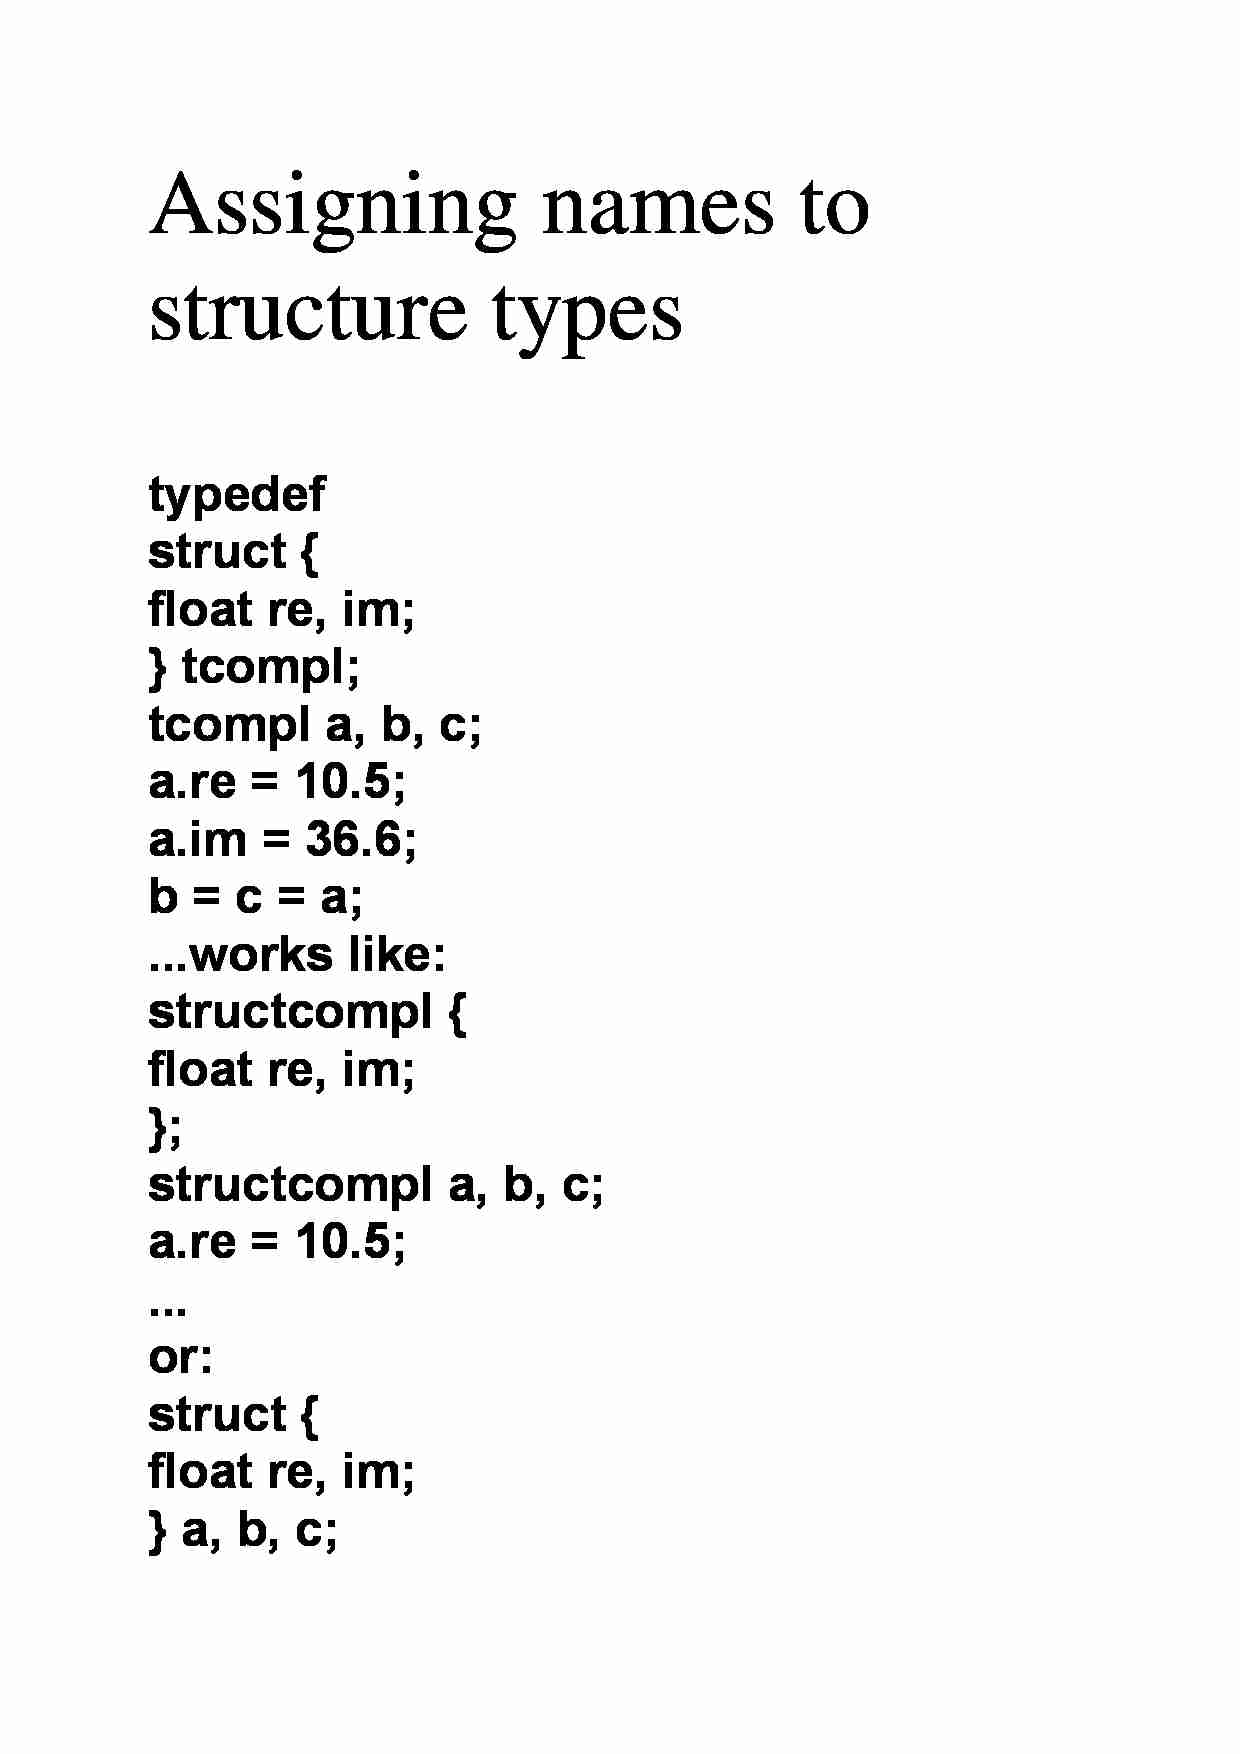 Assigning names to structure types - strona 1